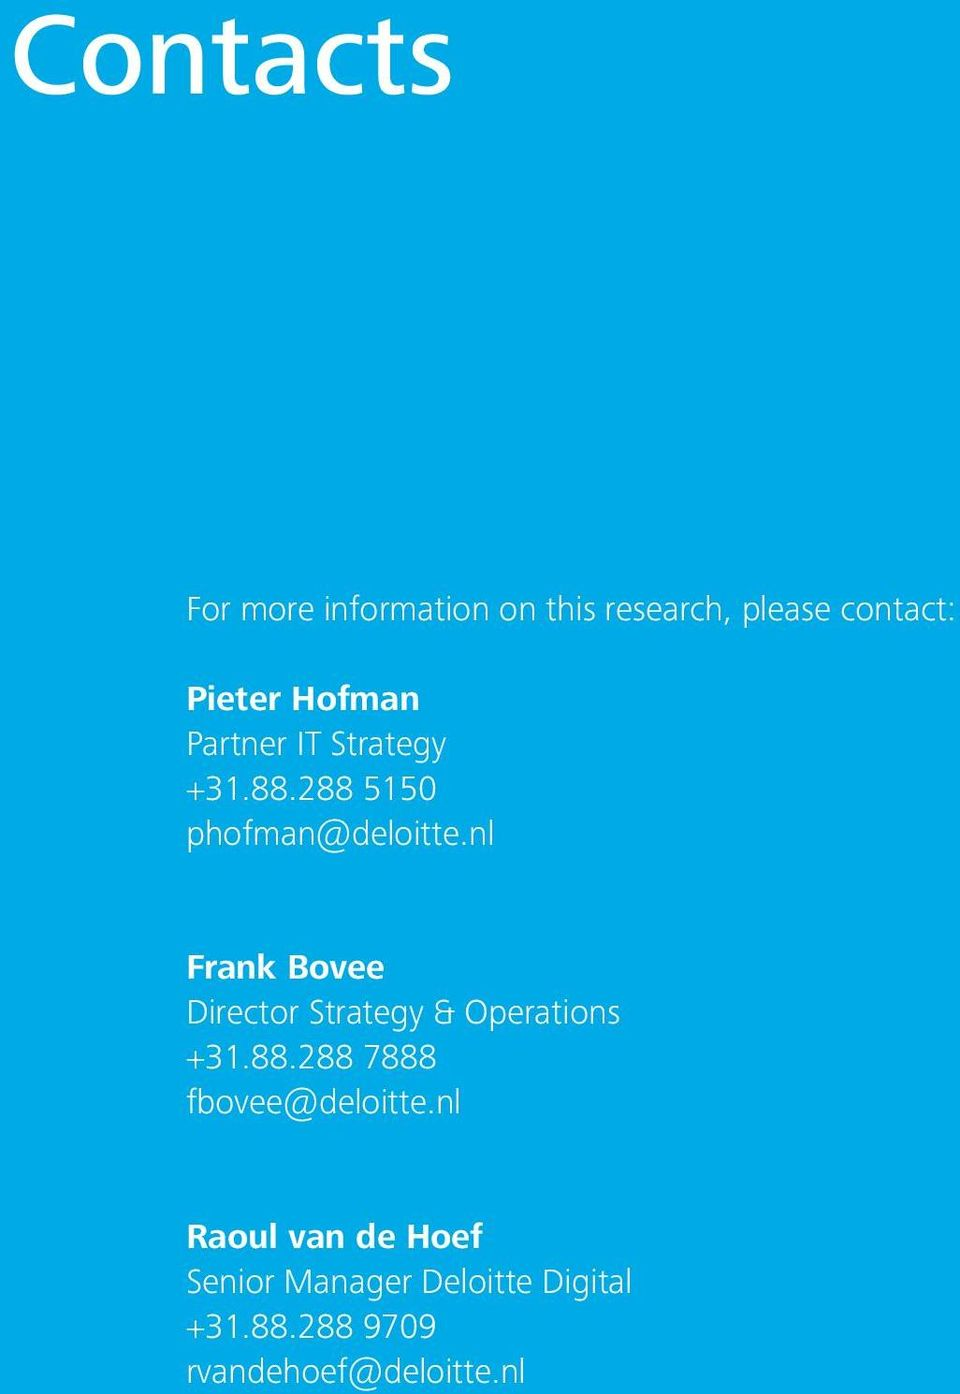 nl Frank Bovee Director Strategy & Operations +31.88.288 7888 fbovee@deloitte.